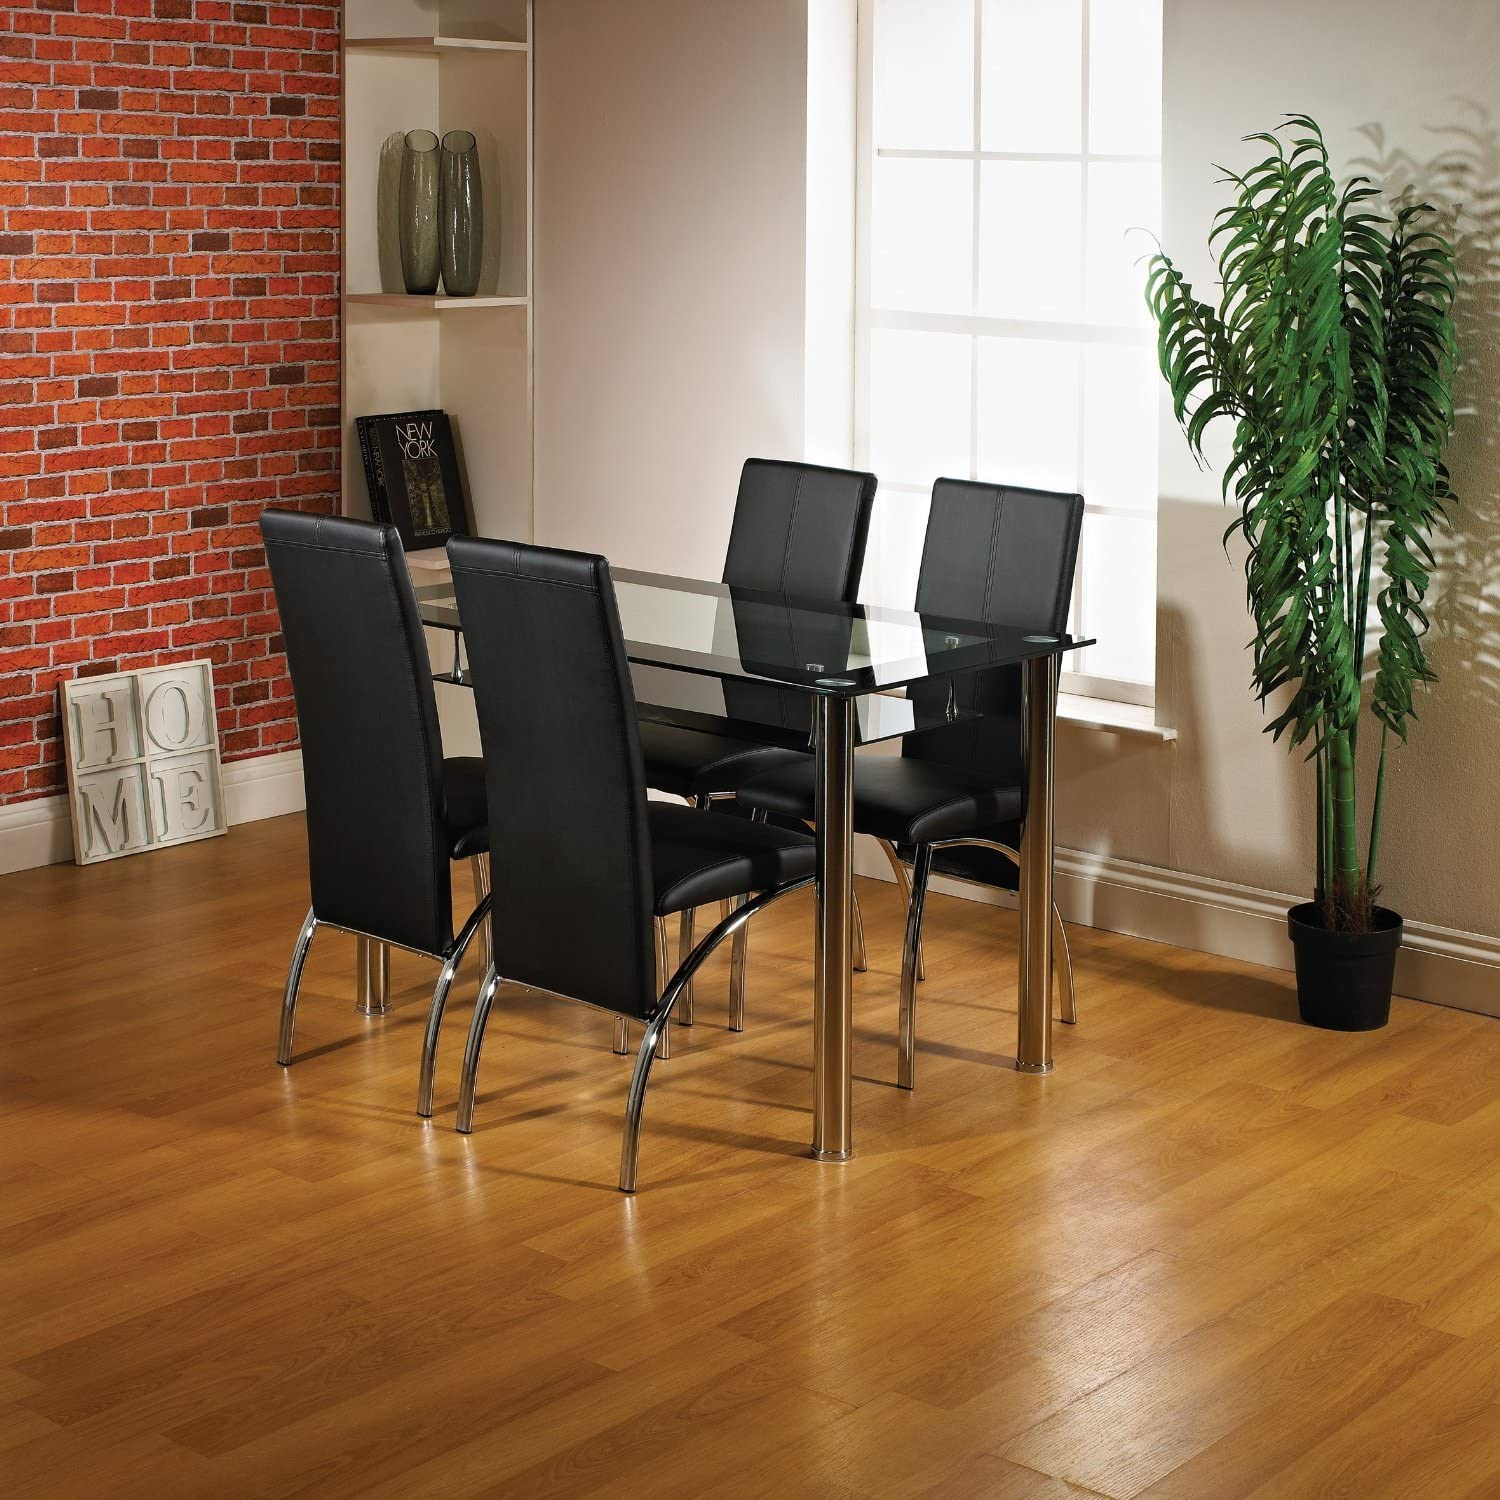 Modernique® Glass Dining Table and 4 Chairs set, Table size 80 cm with faux leather thick foam padded Chairs with Chrome Frame Available in Black (80 CM, Black) Black